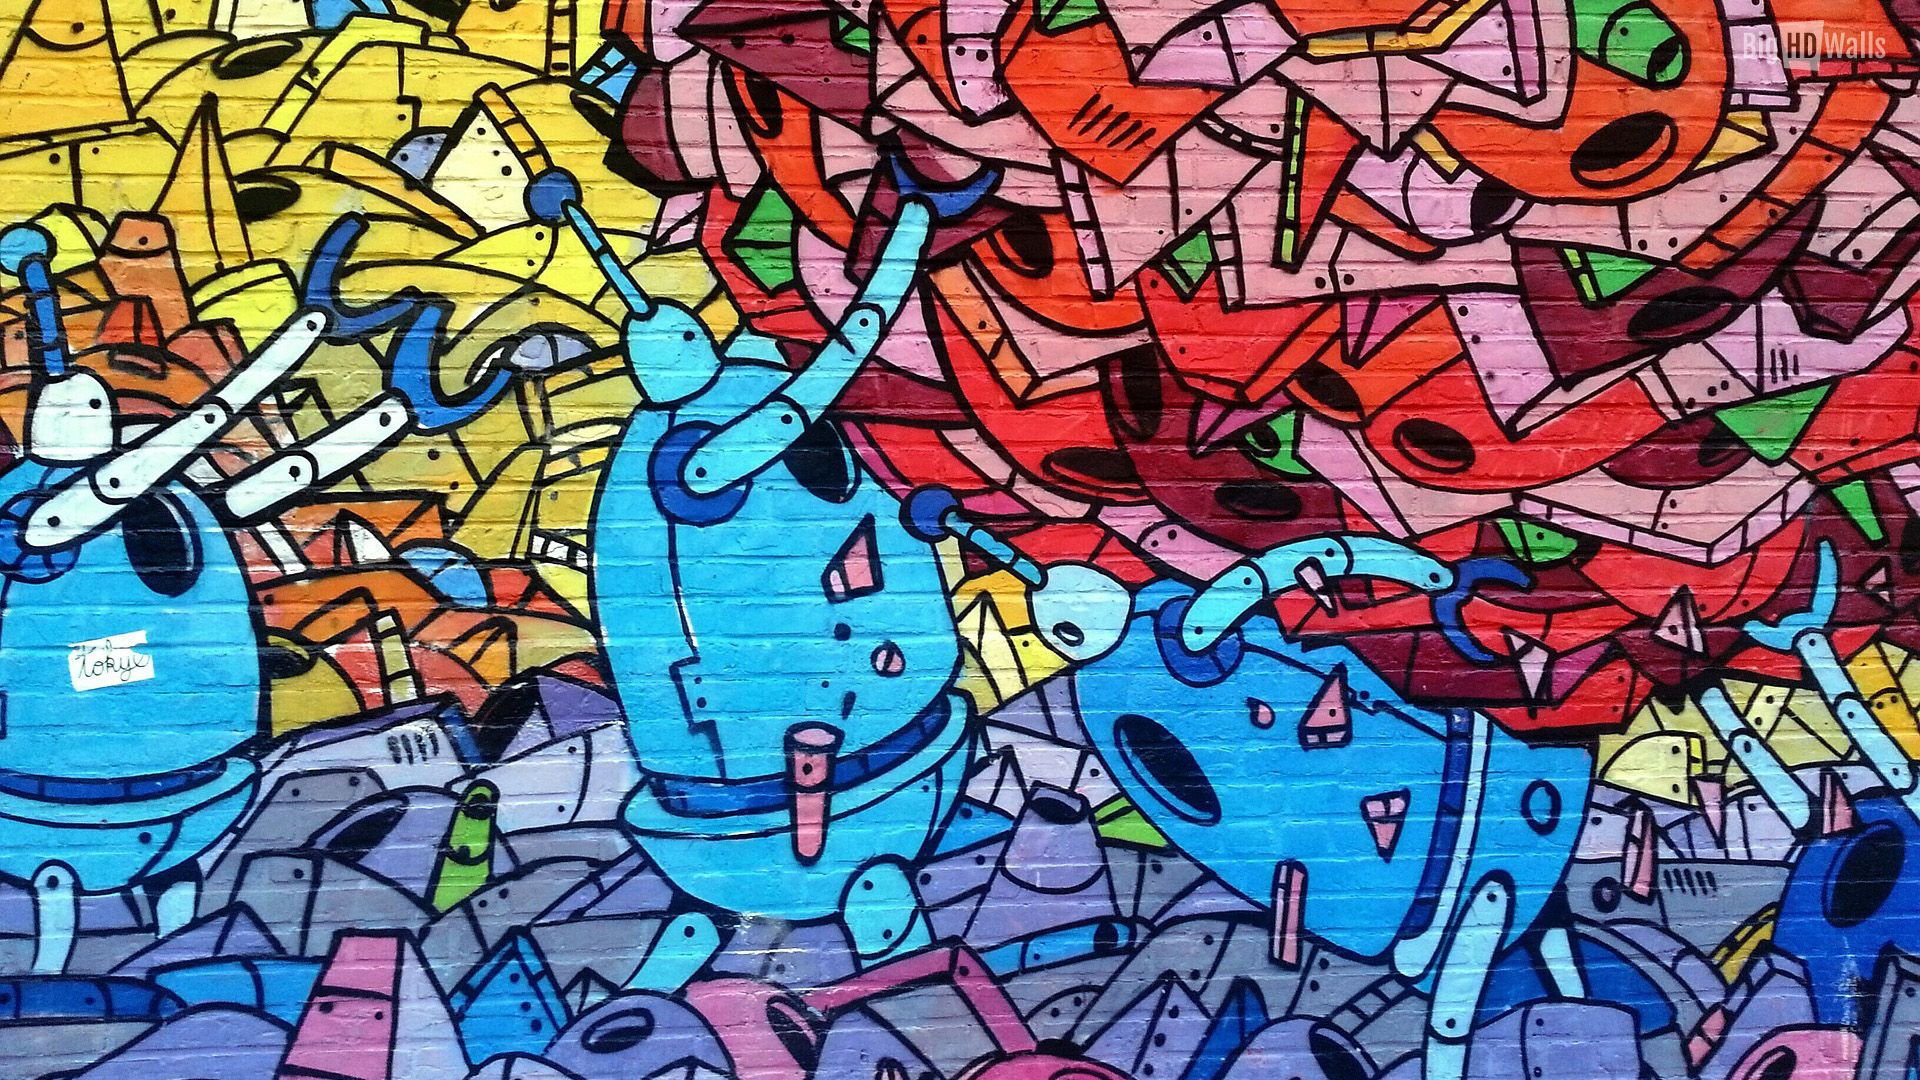 Graffiti Art Wallpapers Hd Resolution For Desktop